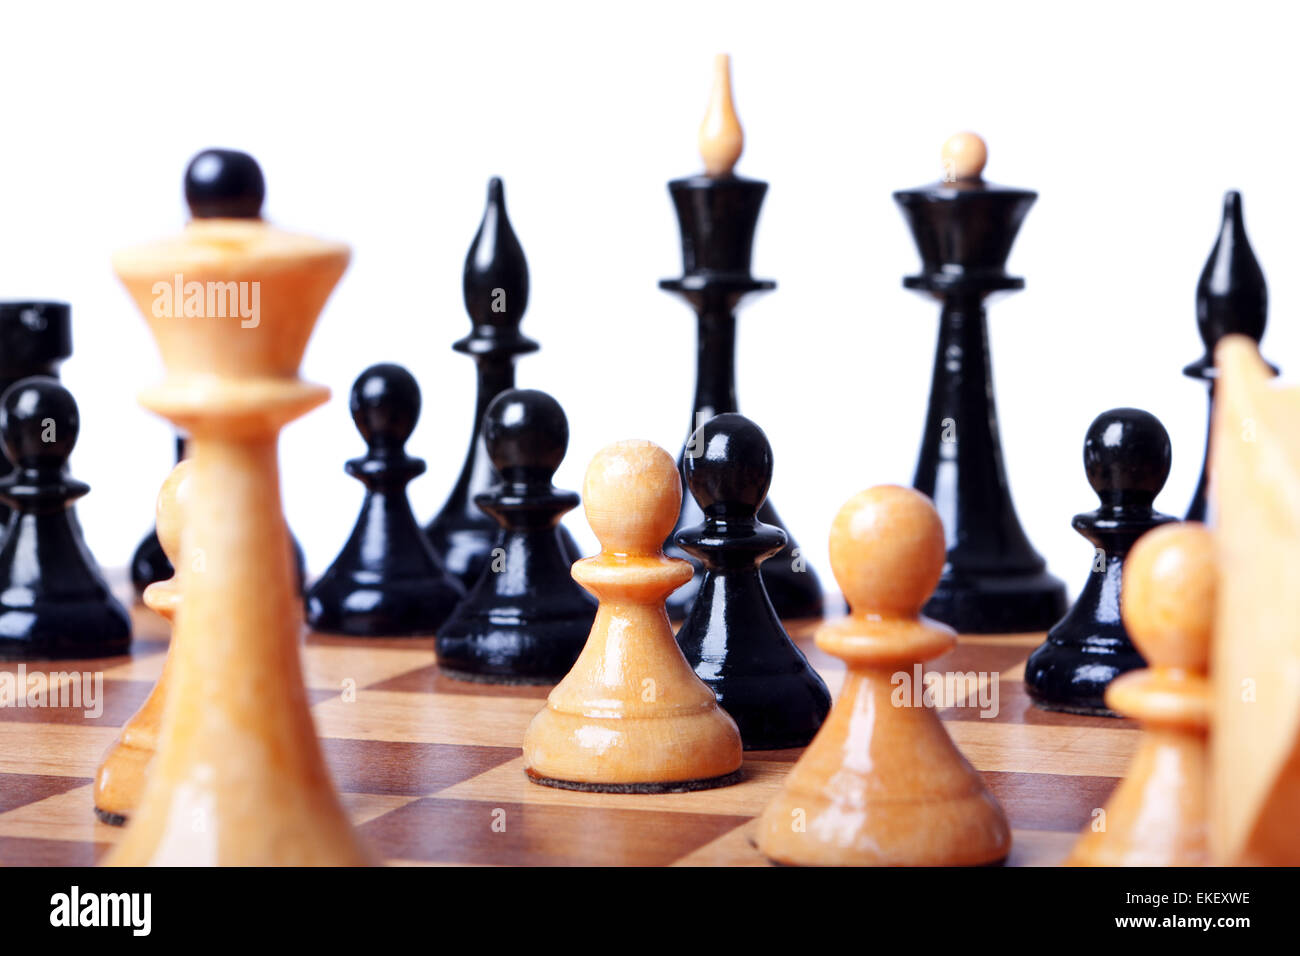 chess board focused closeup - Stock Image